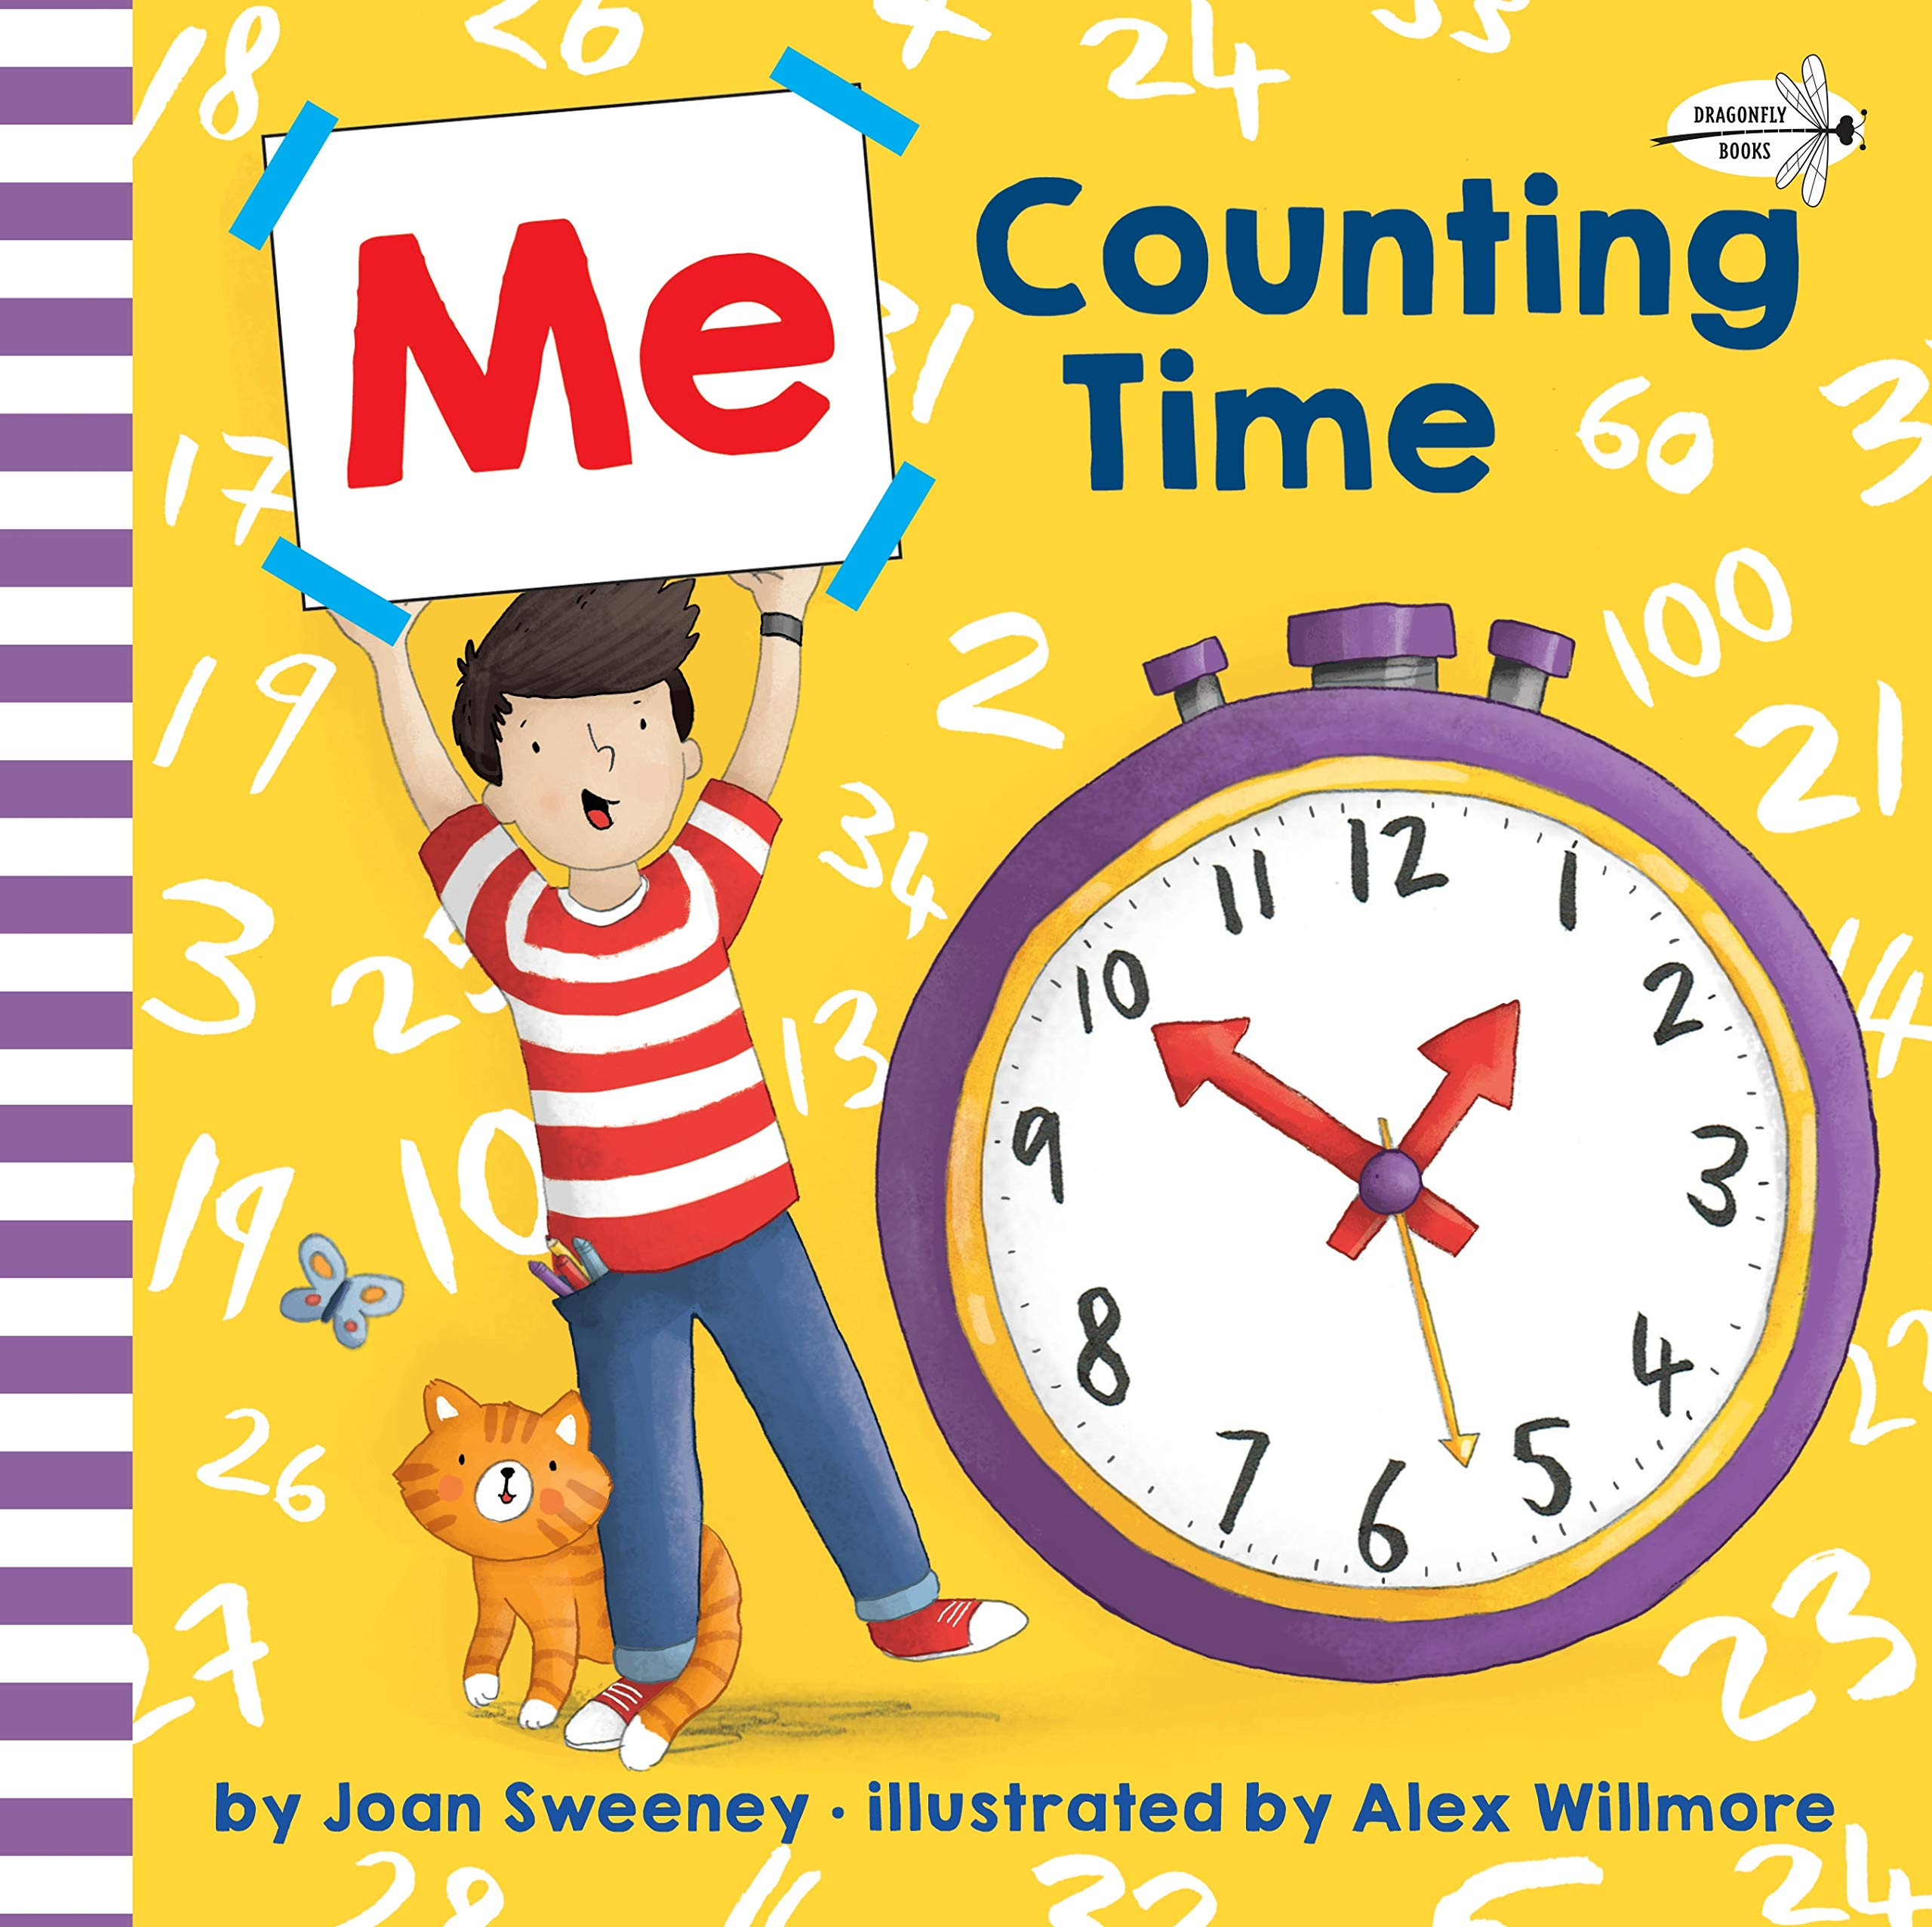 Image OfMe Counting Time